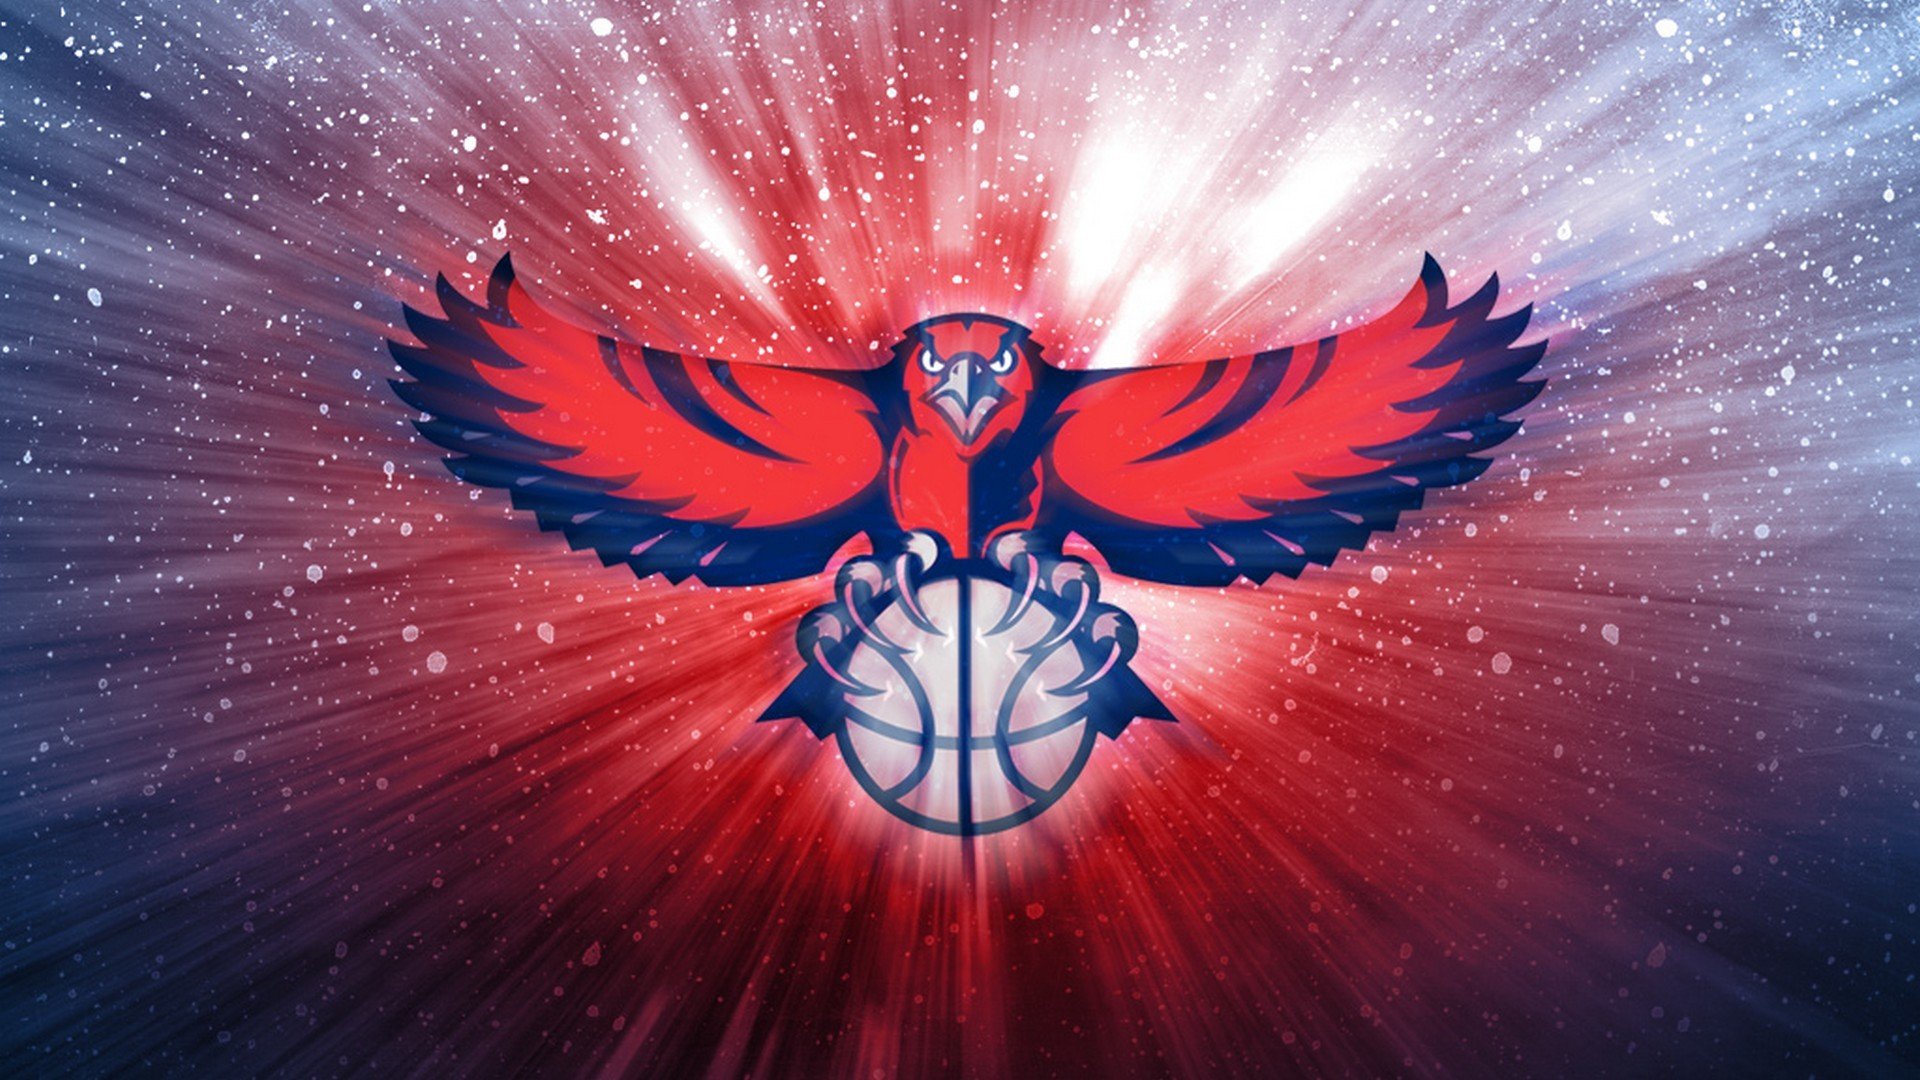 1920x1080 Atlanta Hawks For Mac Wallpaper with image dimensions  pixel. You  can make this wallpaper